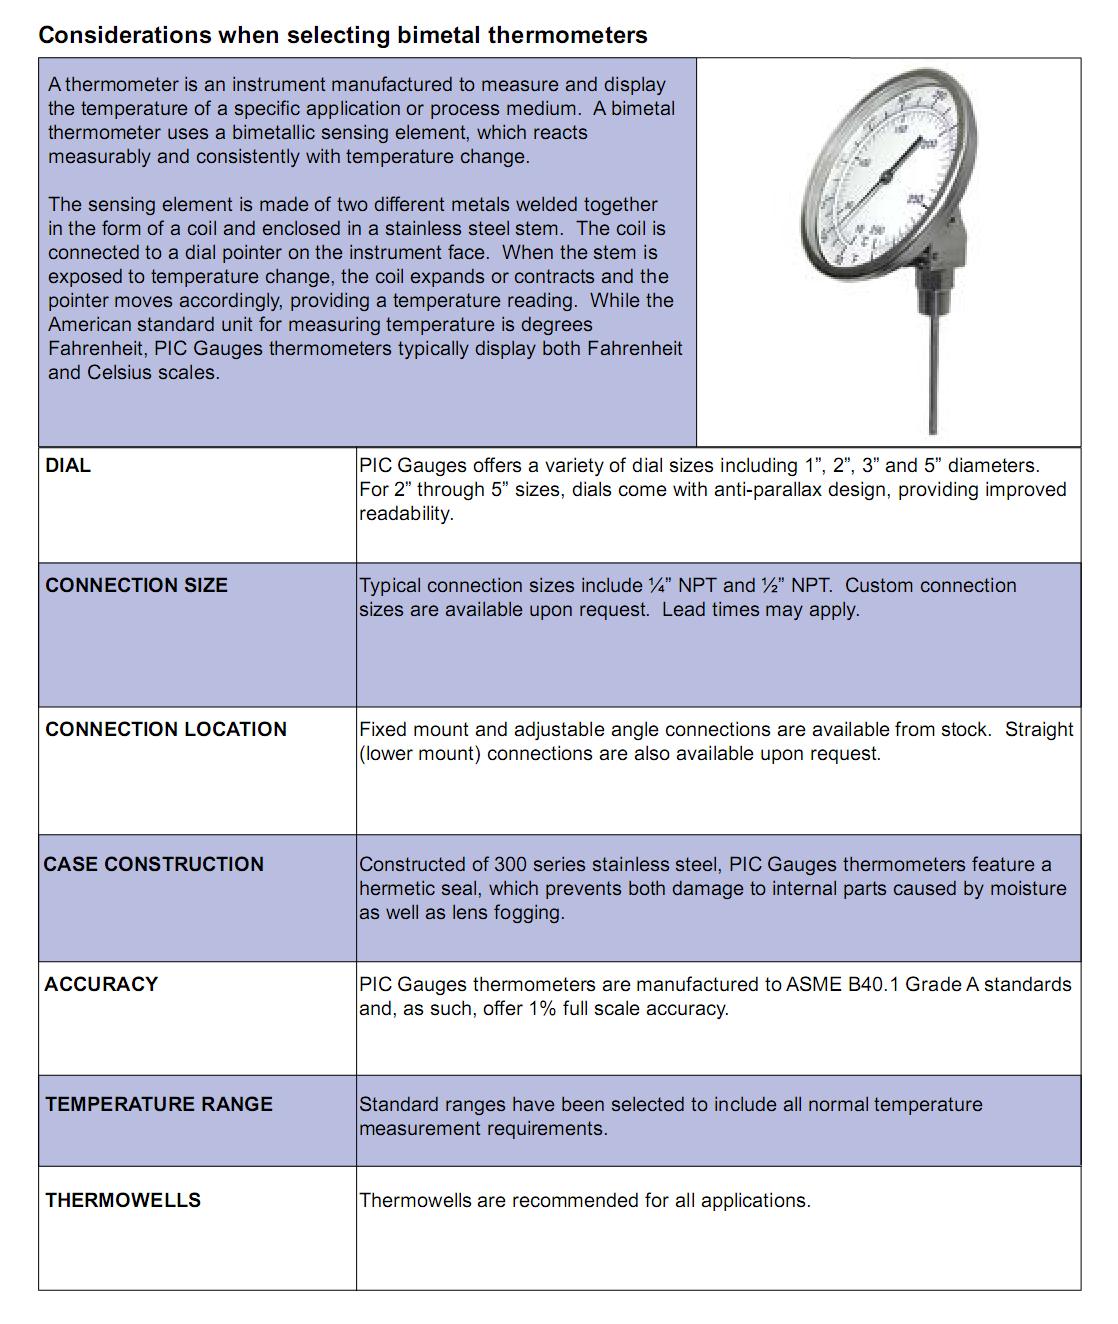 bimetal-thermometers-considerations